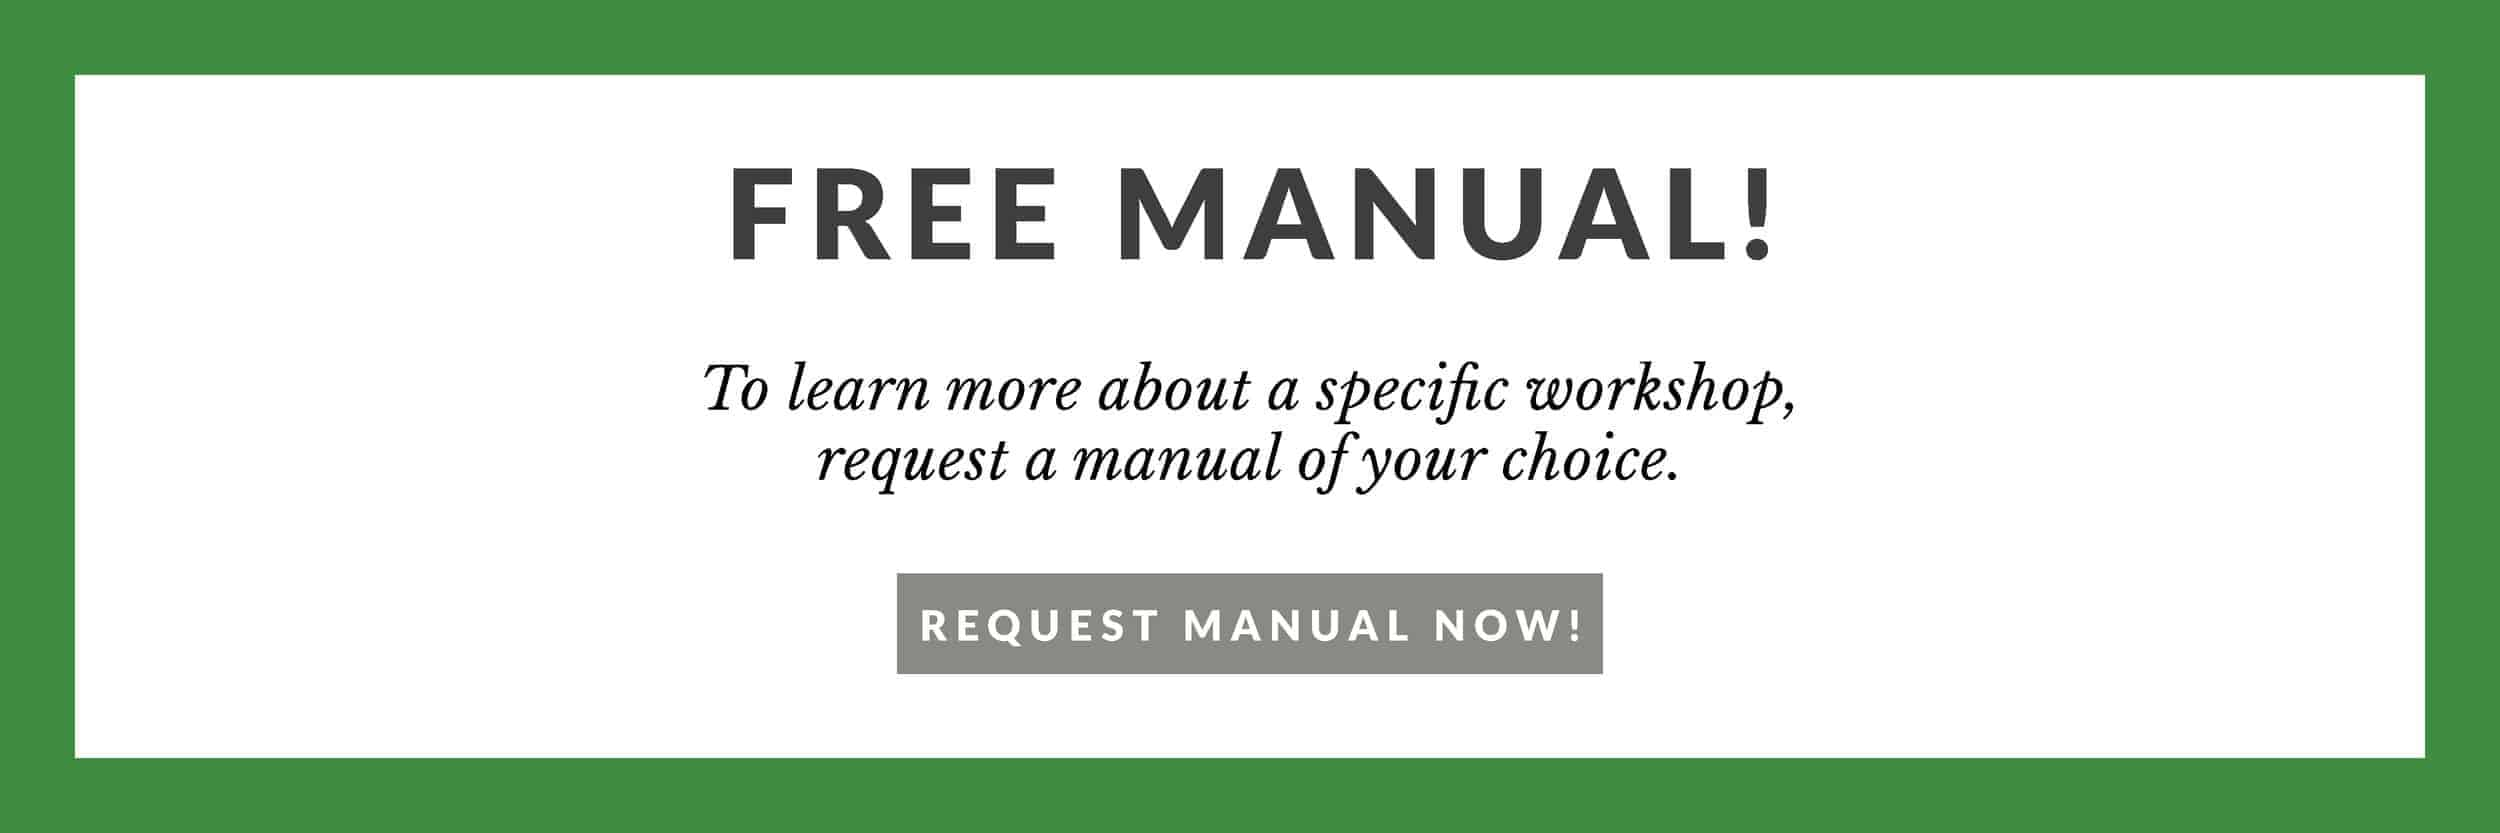 Receive any free manual popup